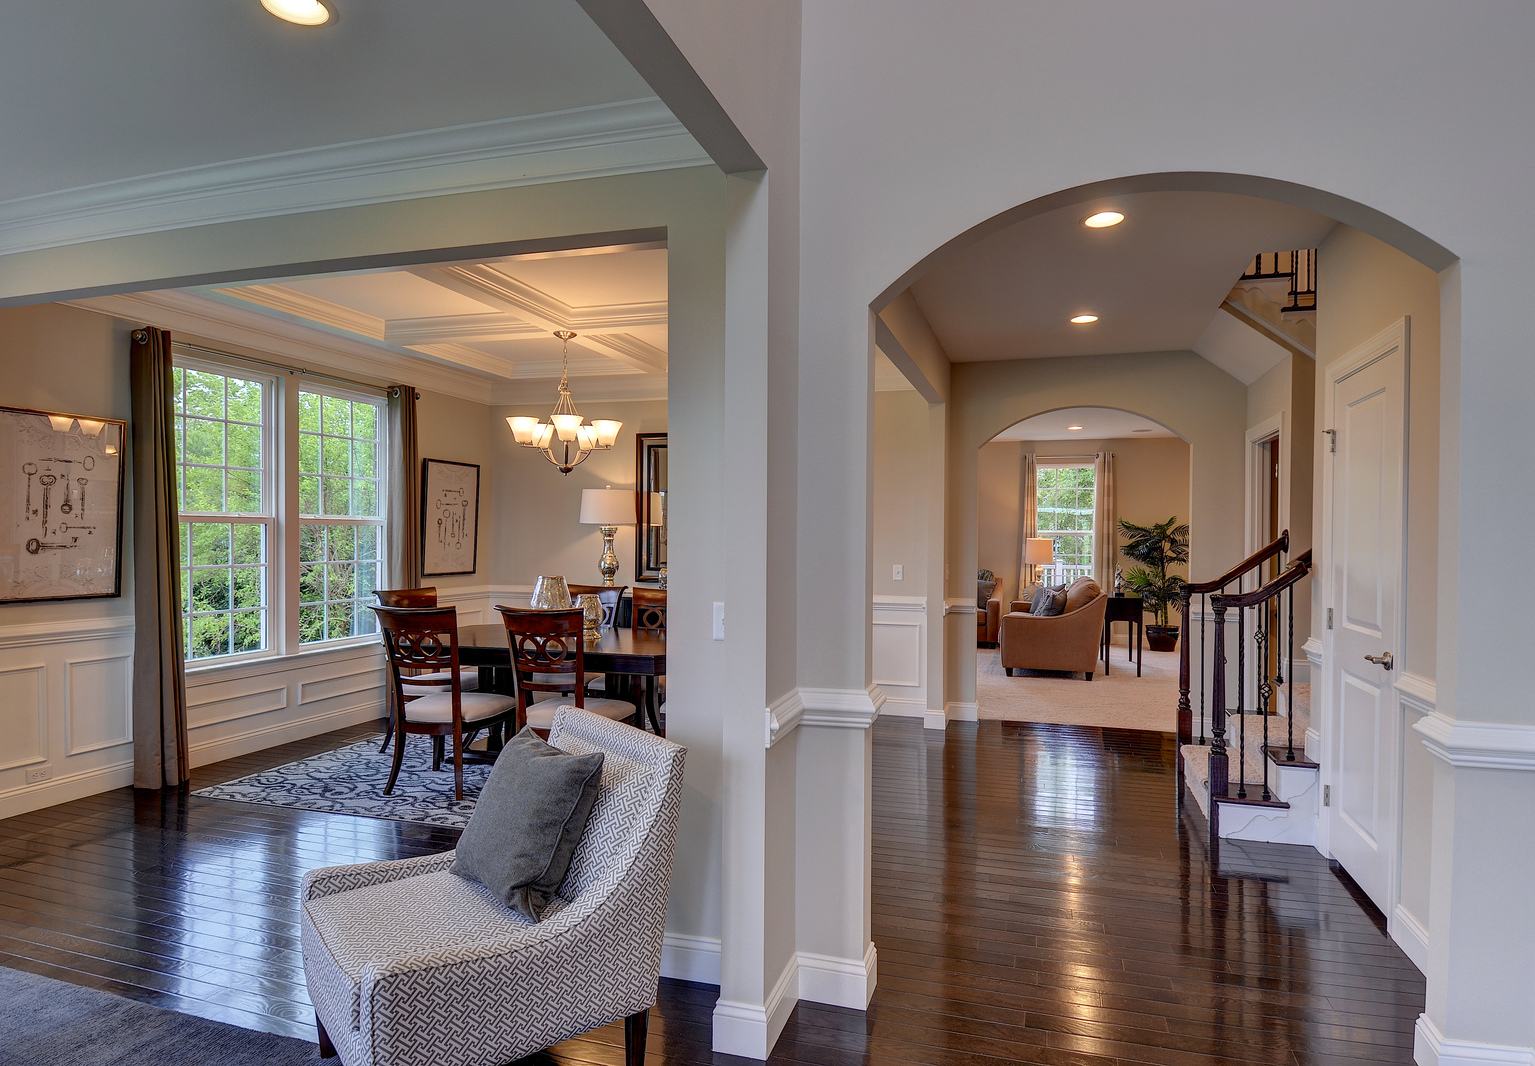 Wrought iron staircase spindles, arched doorways, and stately trim are just a few of the finishing touches to make the floorplan you choose your home sweet home.